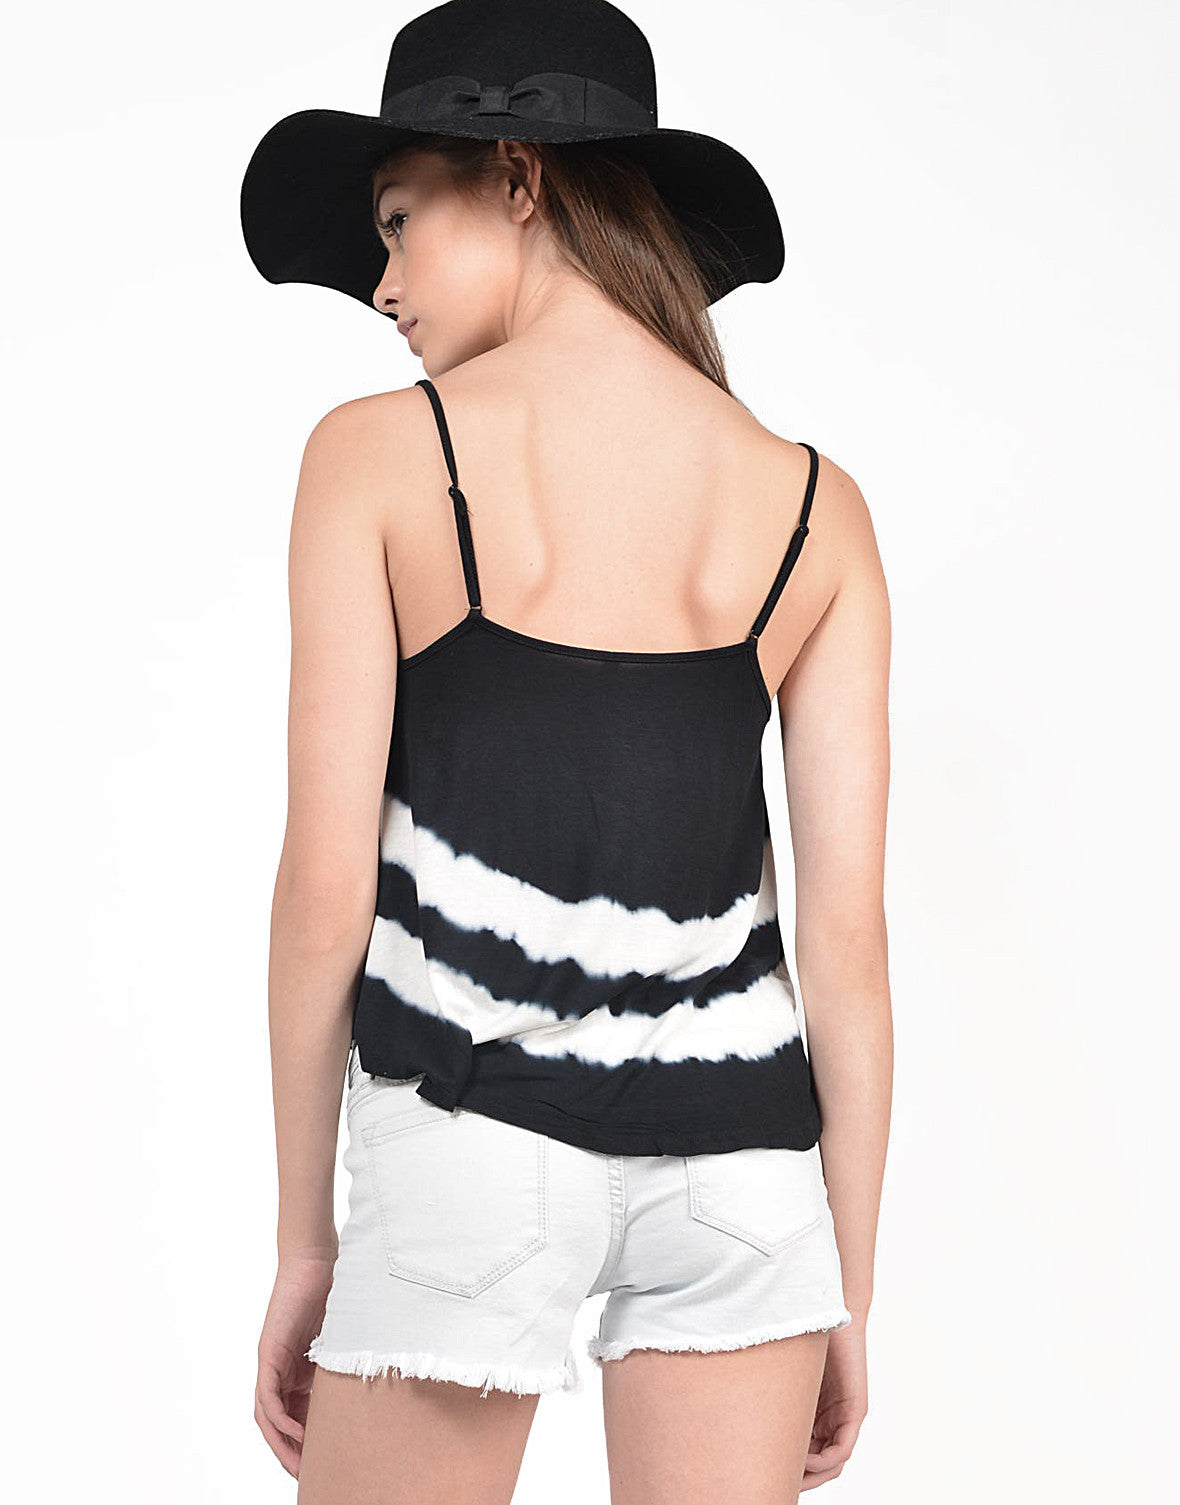 Back View of Tie-Dye Cropped Cami Top